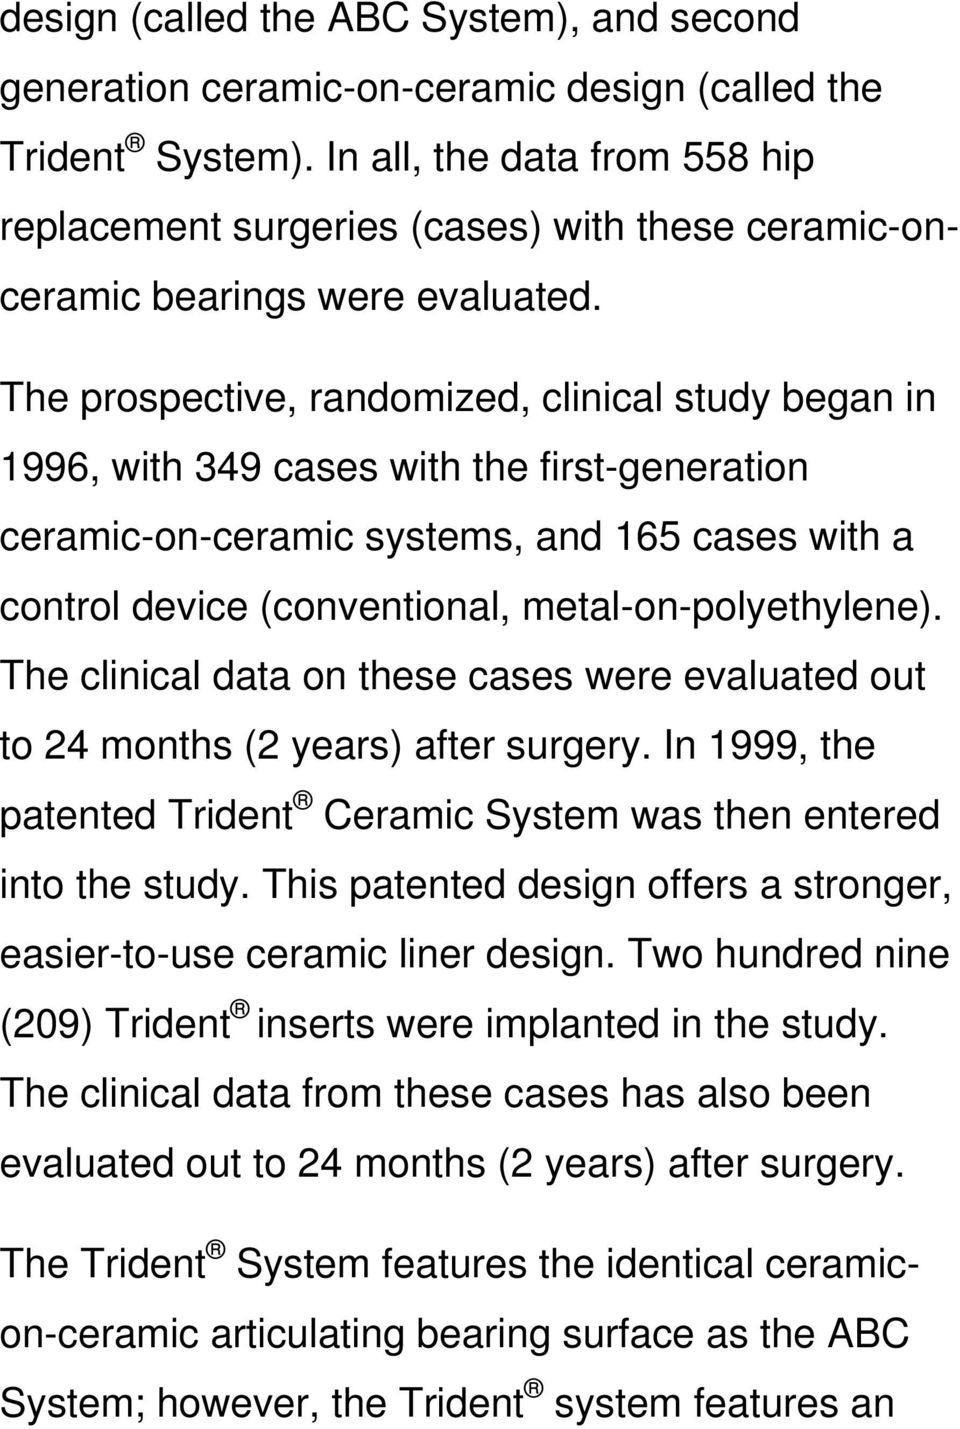 The prospective, randomized, clinical study began in 1996, with 349 cases with the first-generation ceramic-on-ceramic systems, and 165 cases with a control device (conventional,